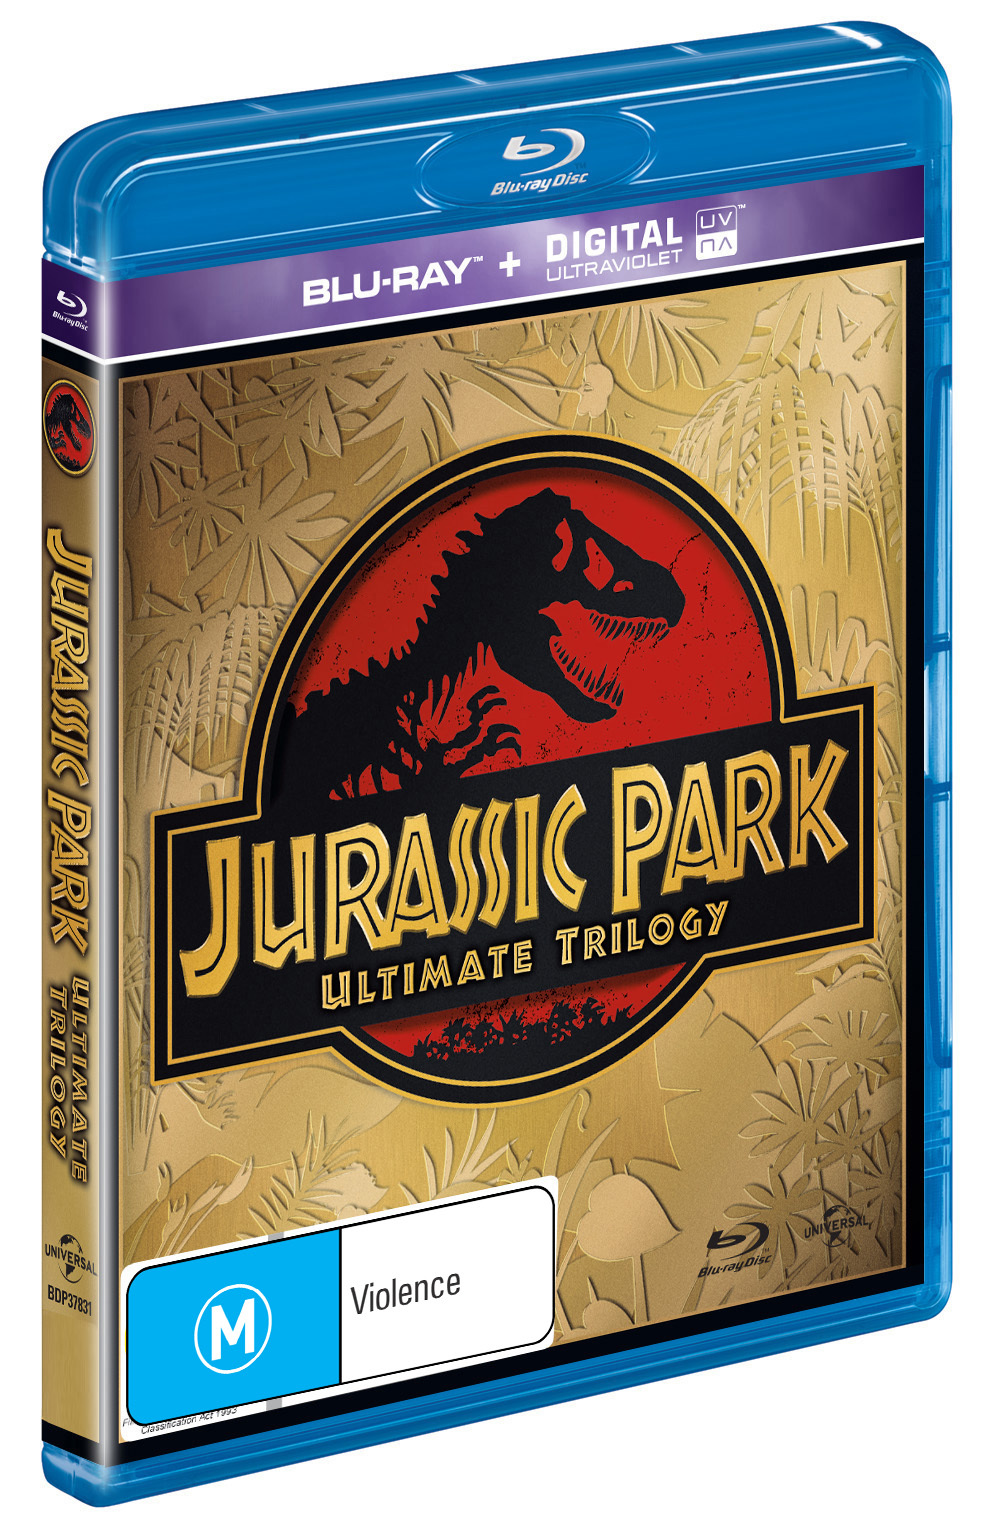 Jurassic Park Ultimate Trilogy on Blu-ray image